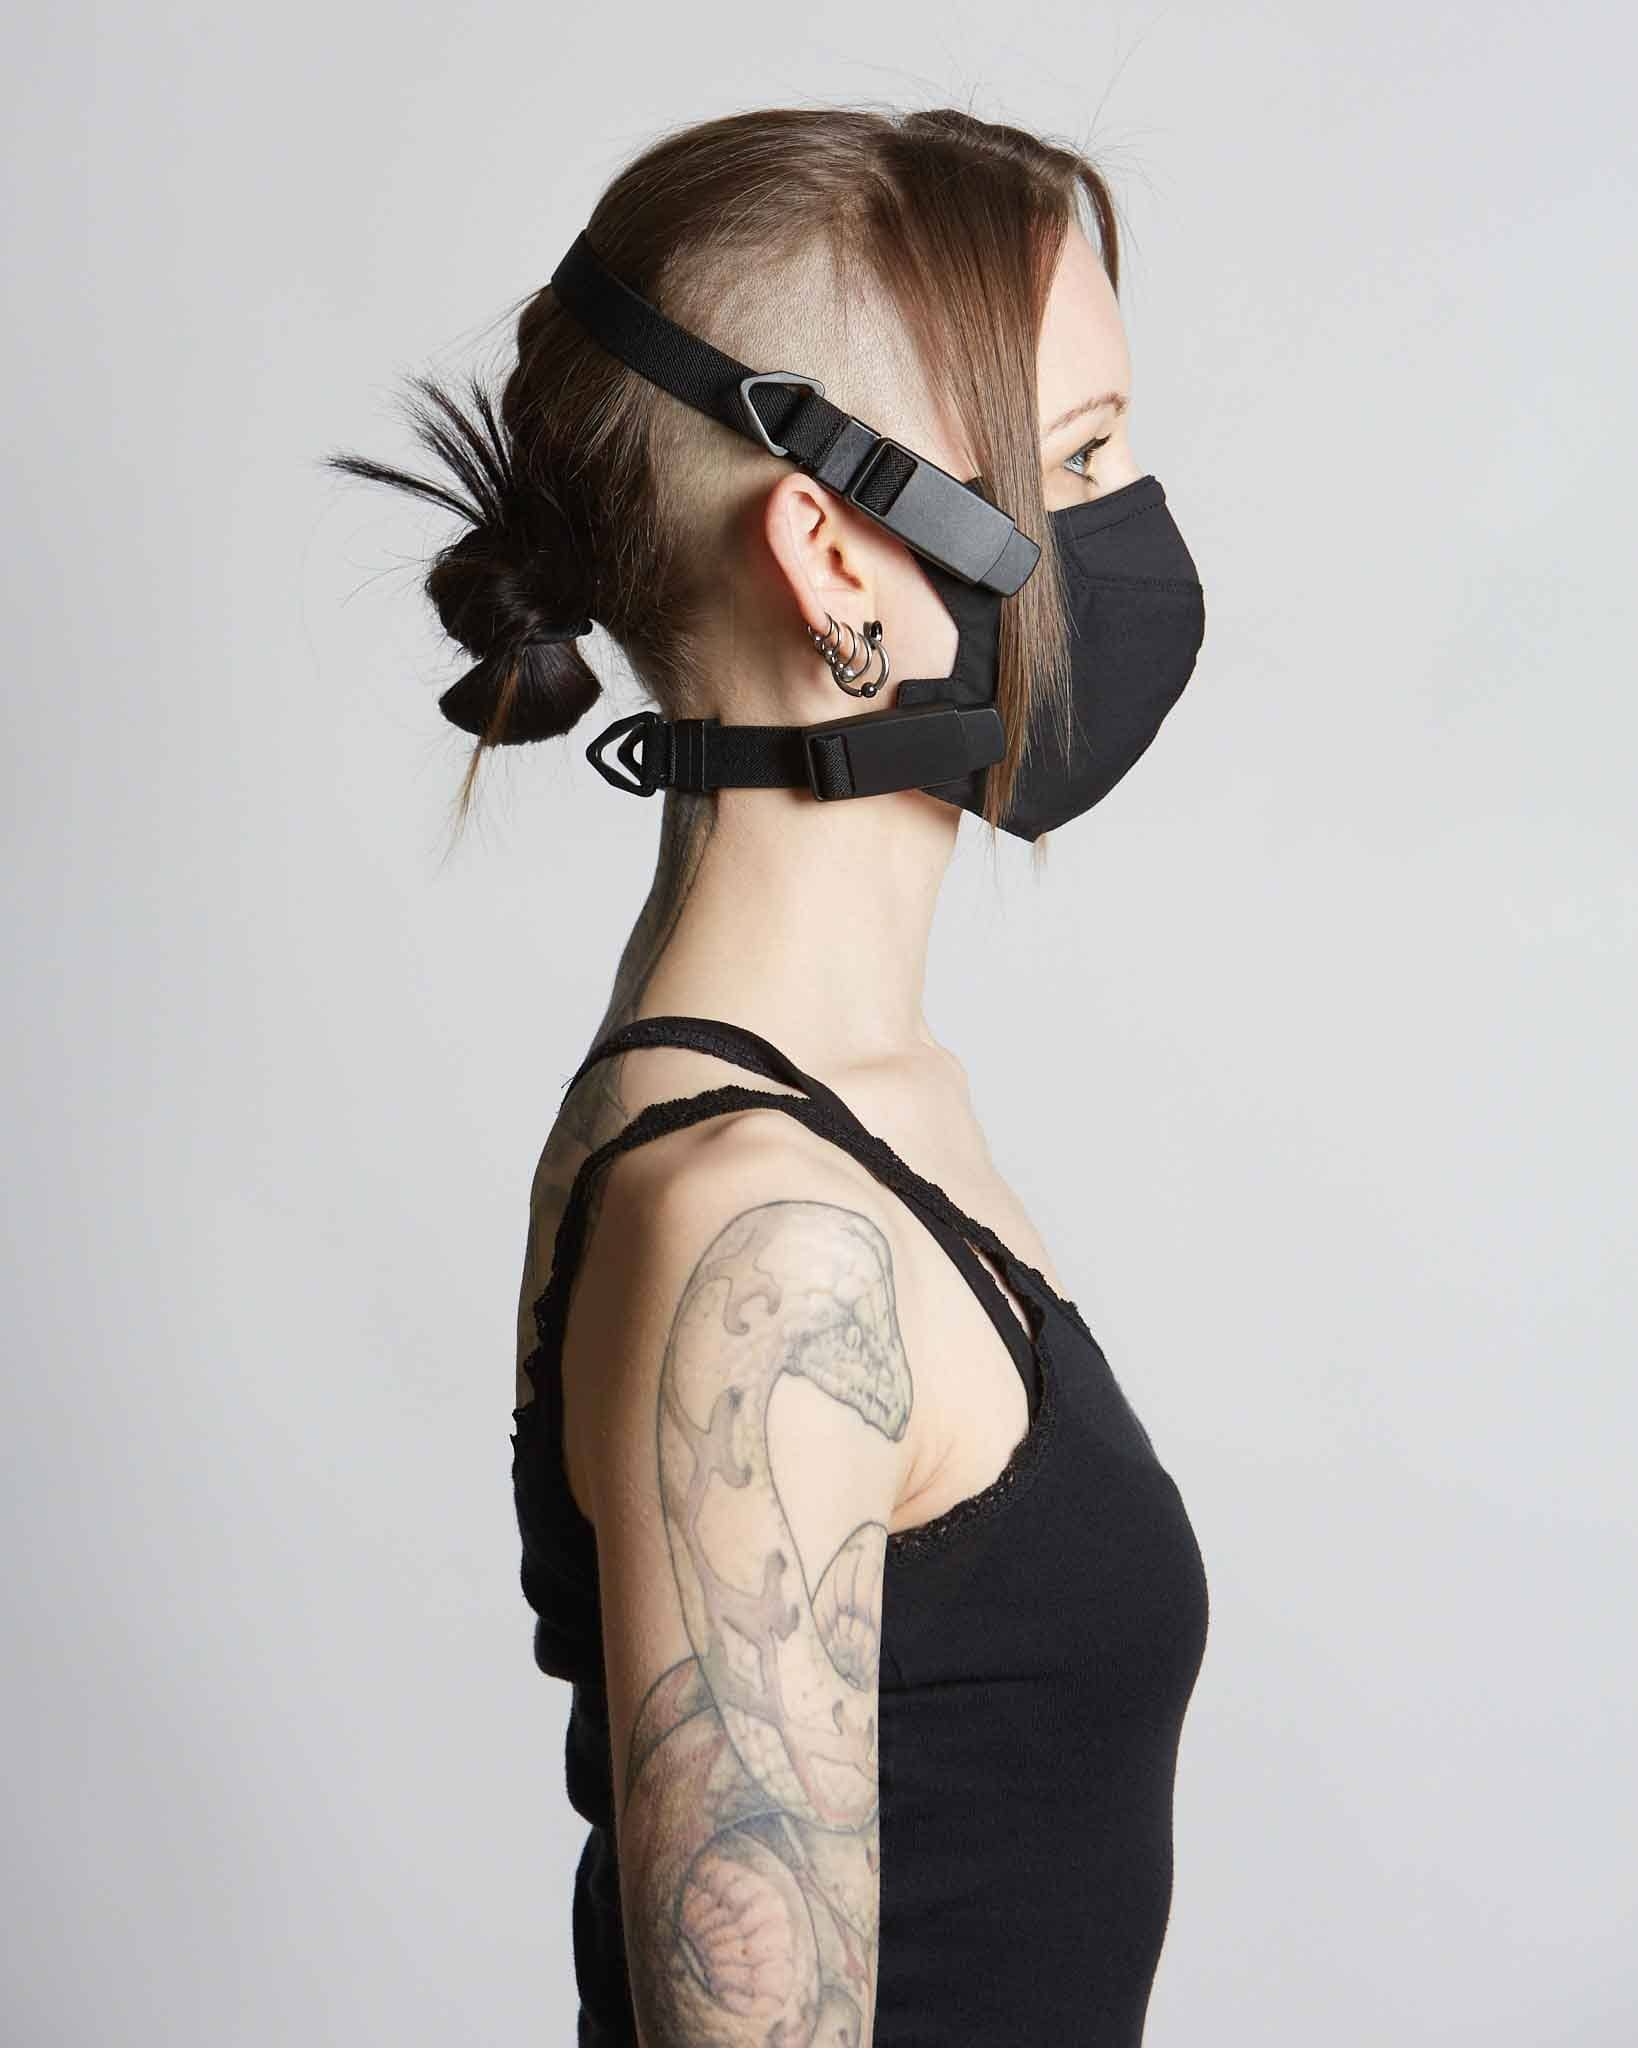 BDSM influenced COVID mask with special magnetic bulky hardware